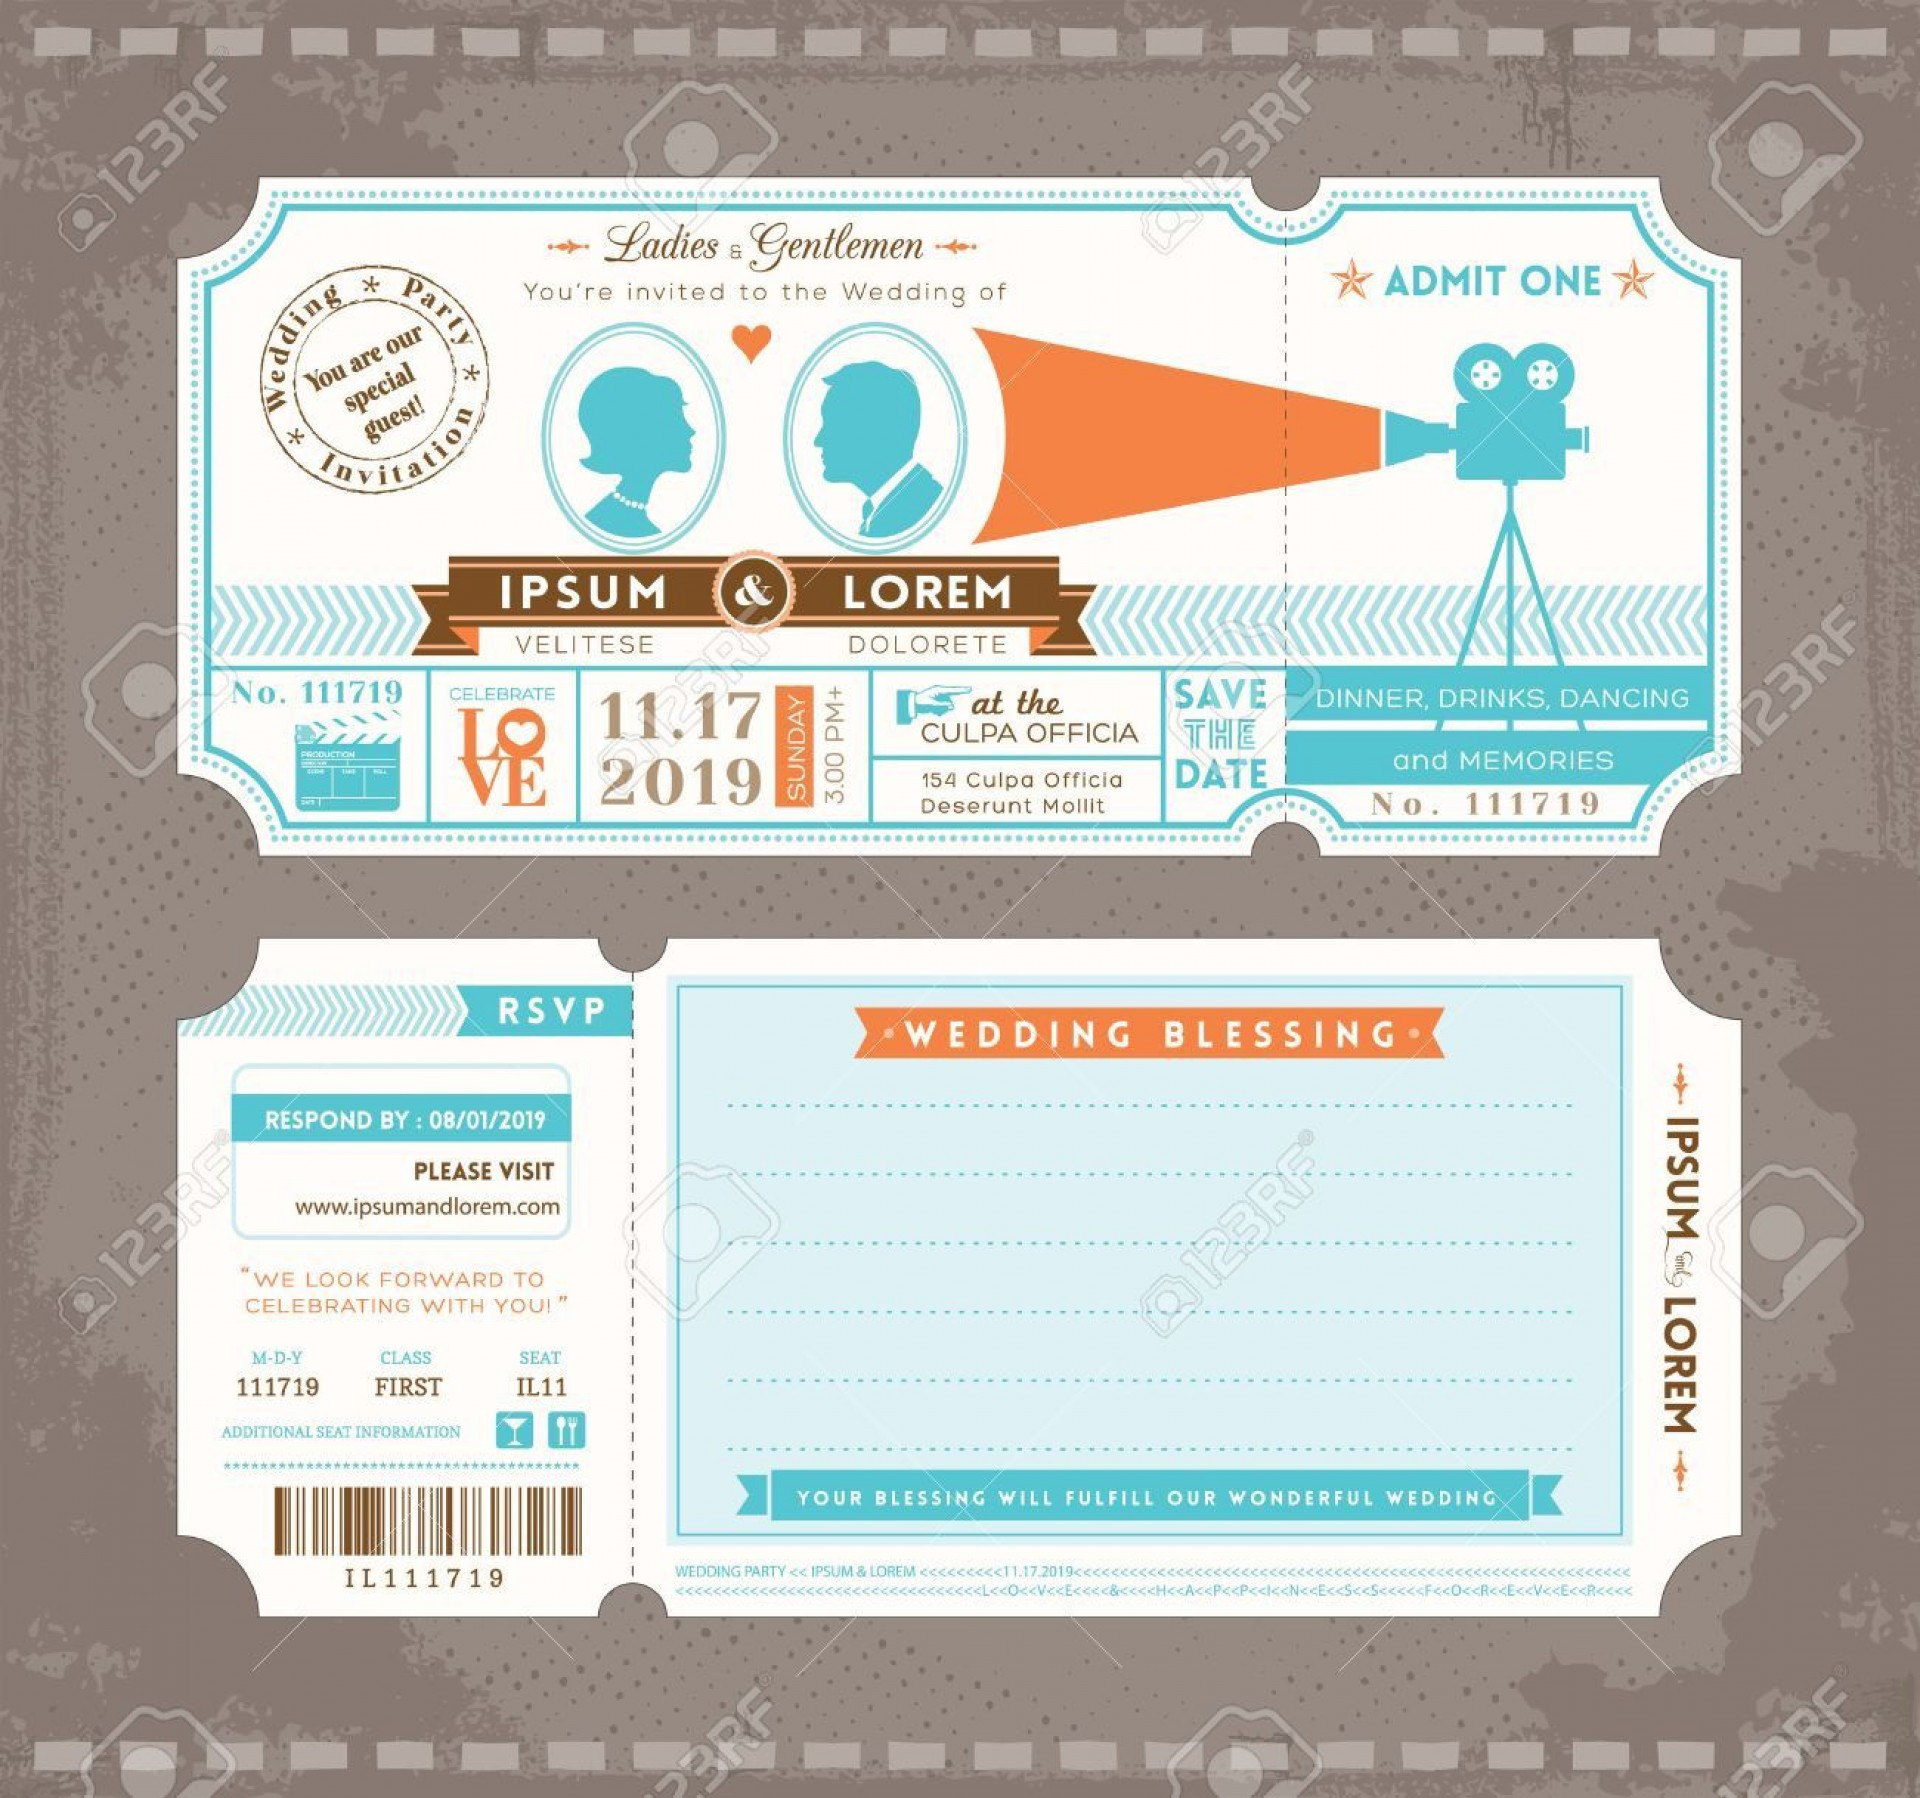 002 Awesome Movie Ticket Invitation Template Picture  Blank Free Download Editable Printable1920